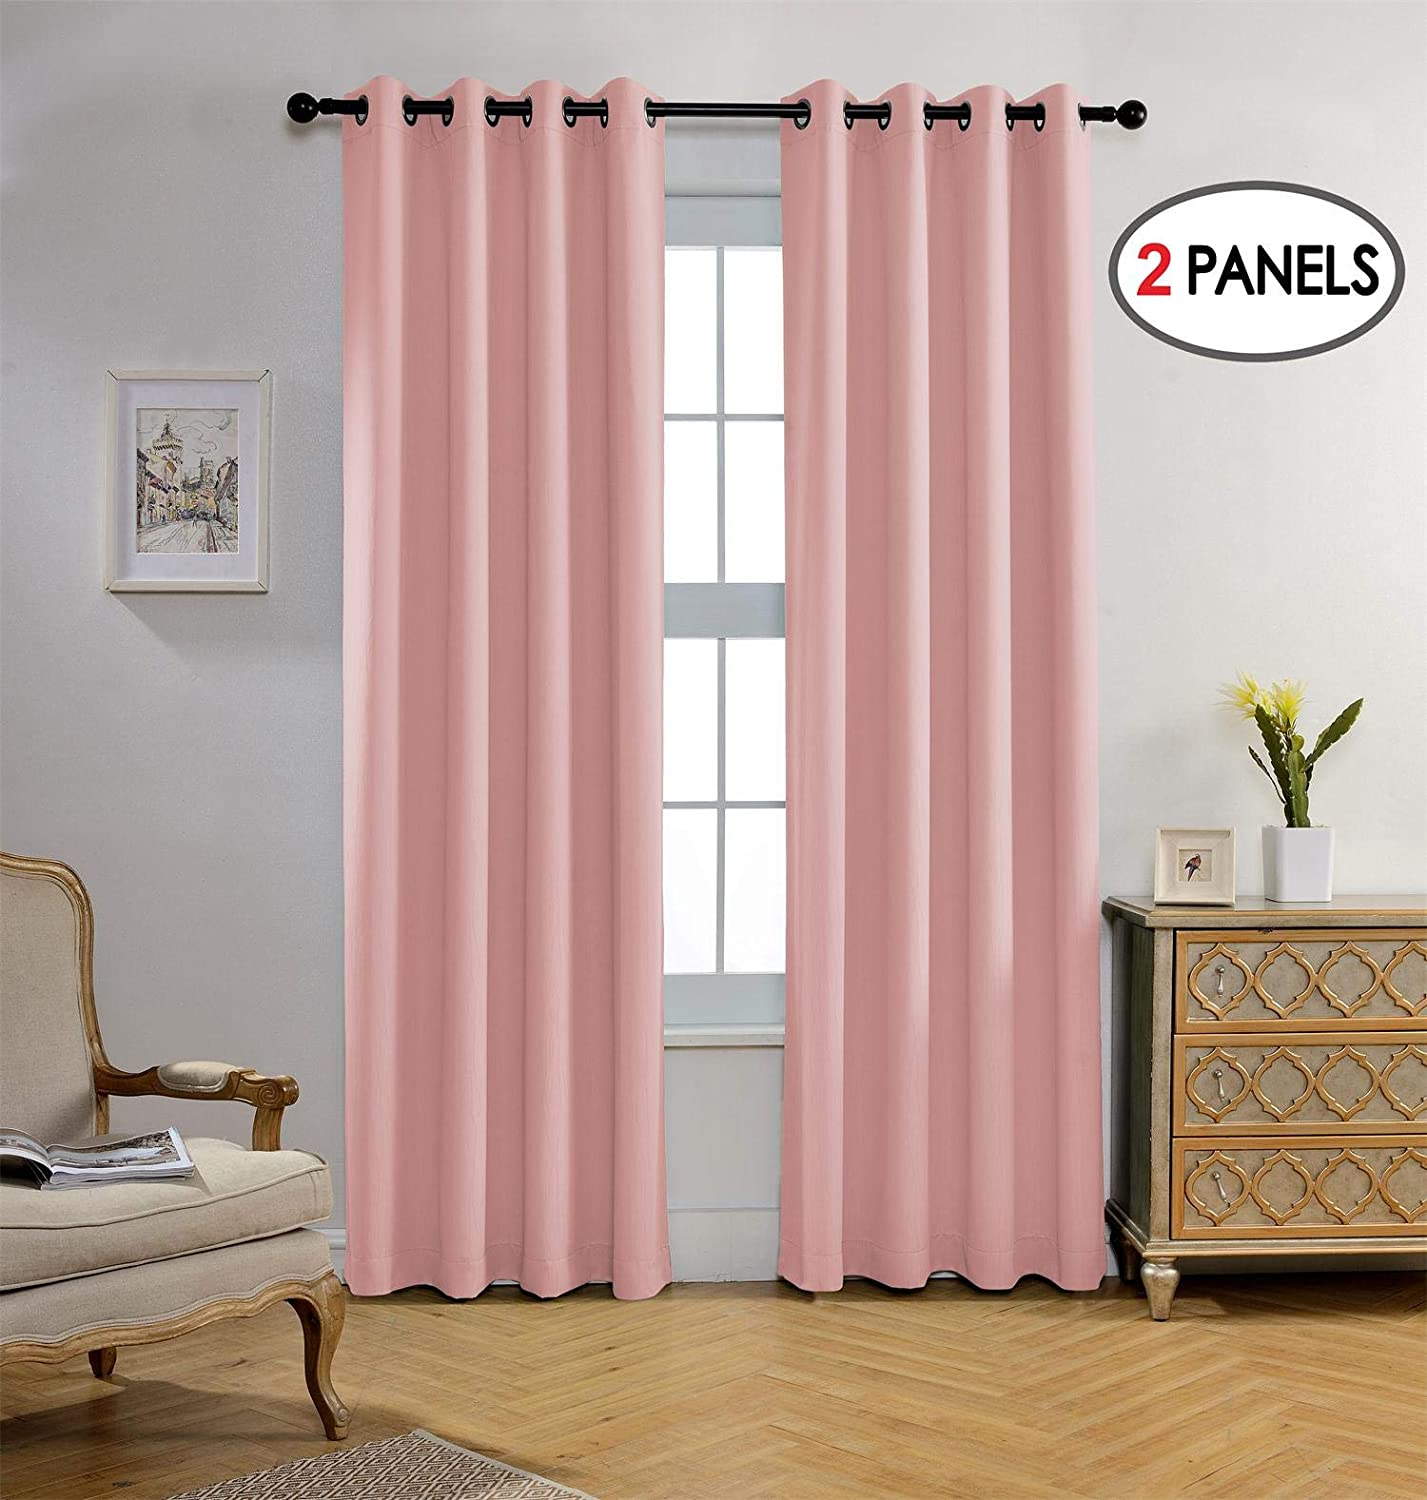 Miuco Blackout Curtains Room Darkening Textured Grommet Window Curtains Nursery